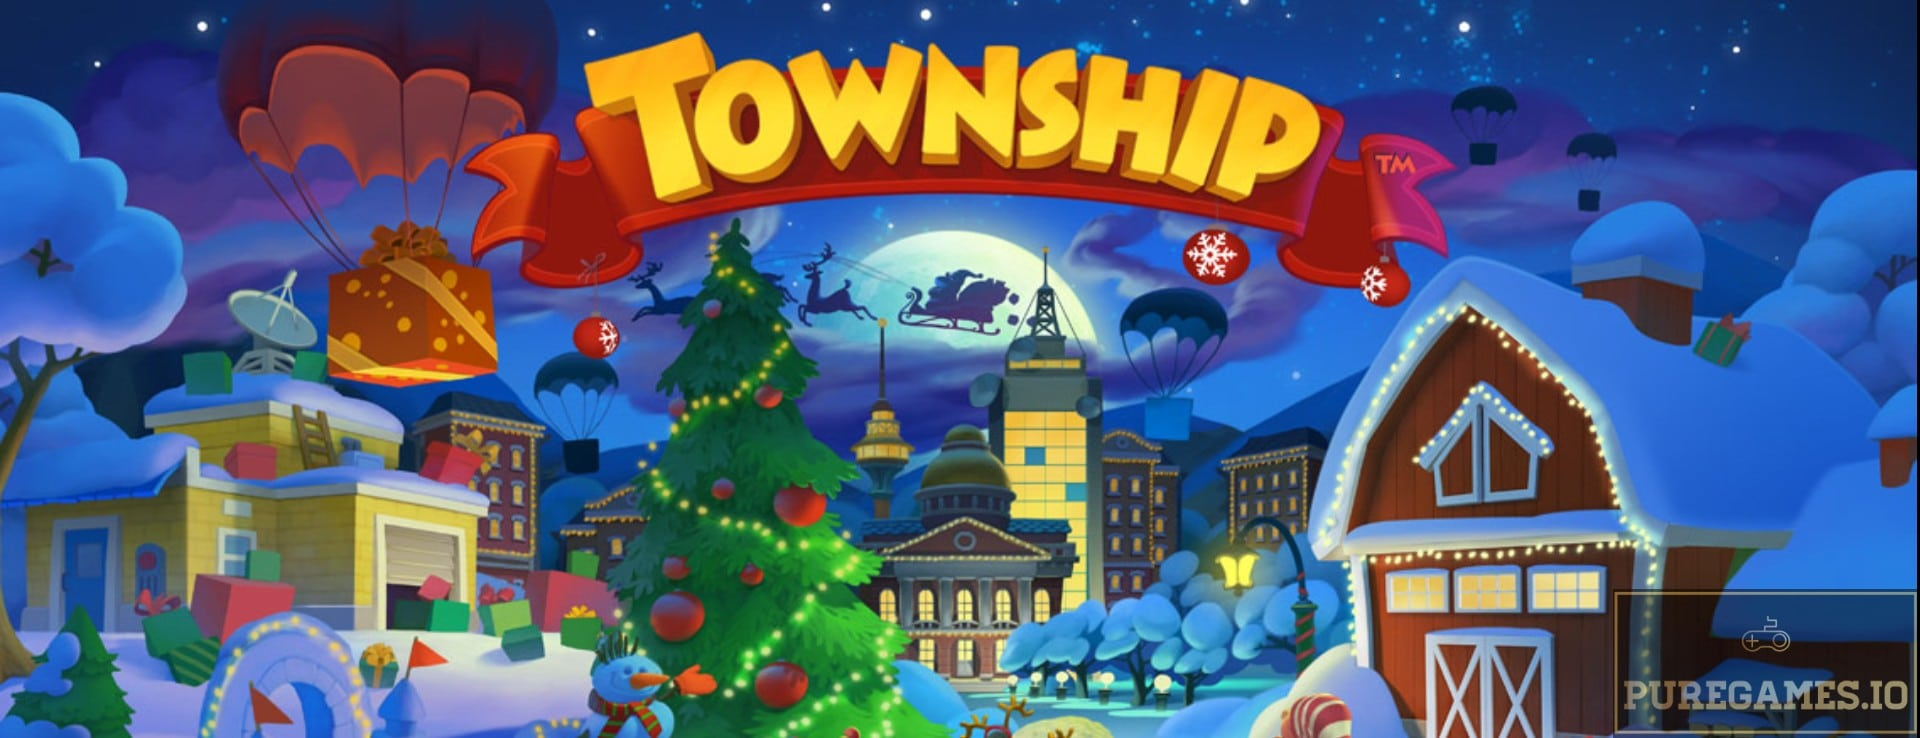 Download Township APK for Android/iOS 11